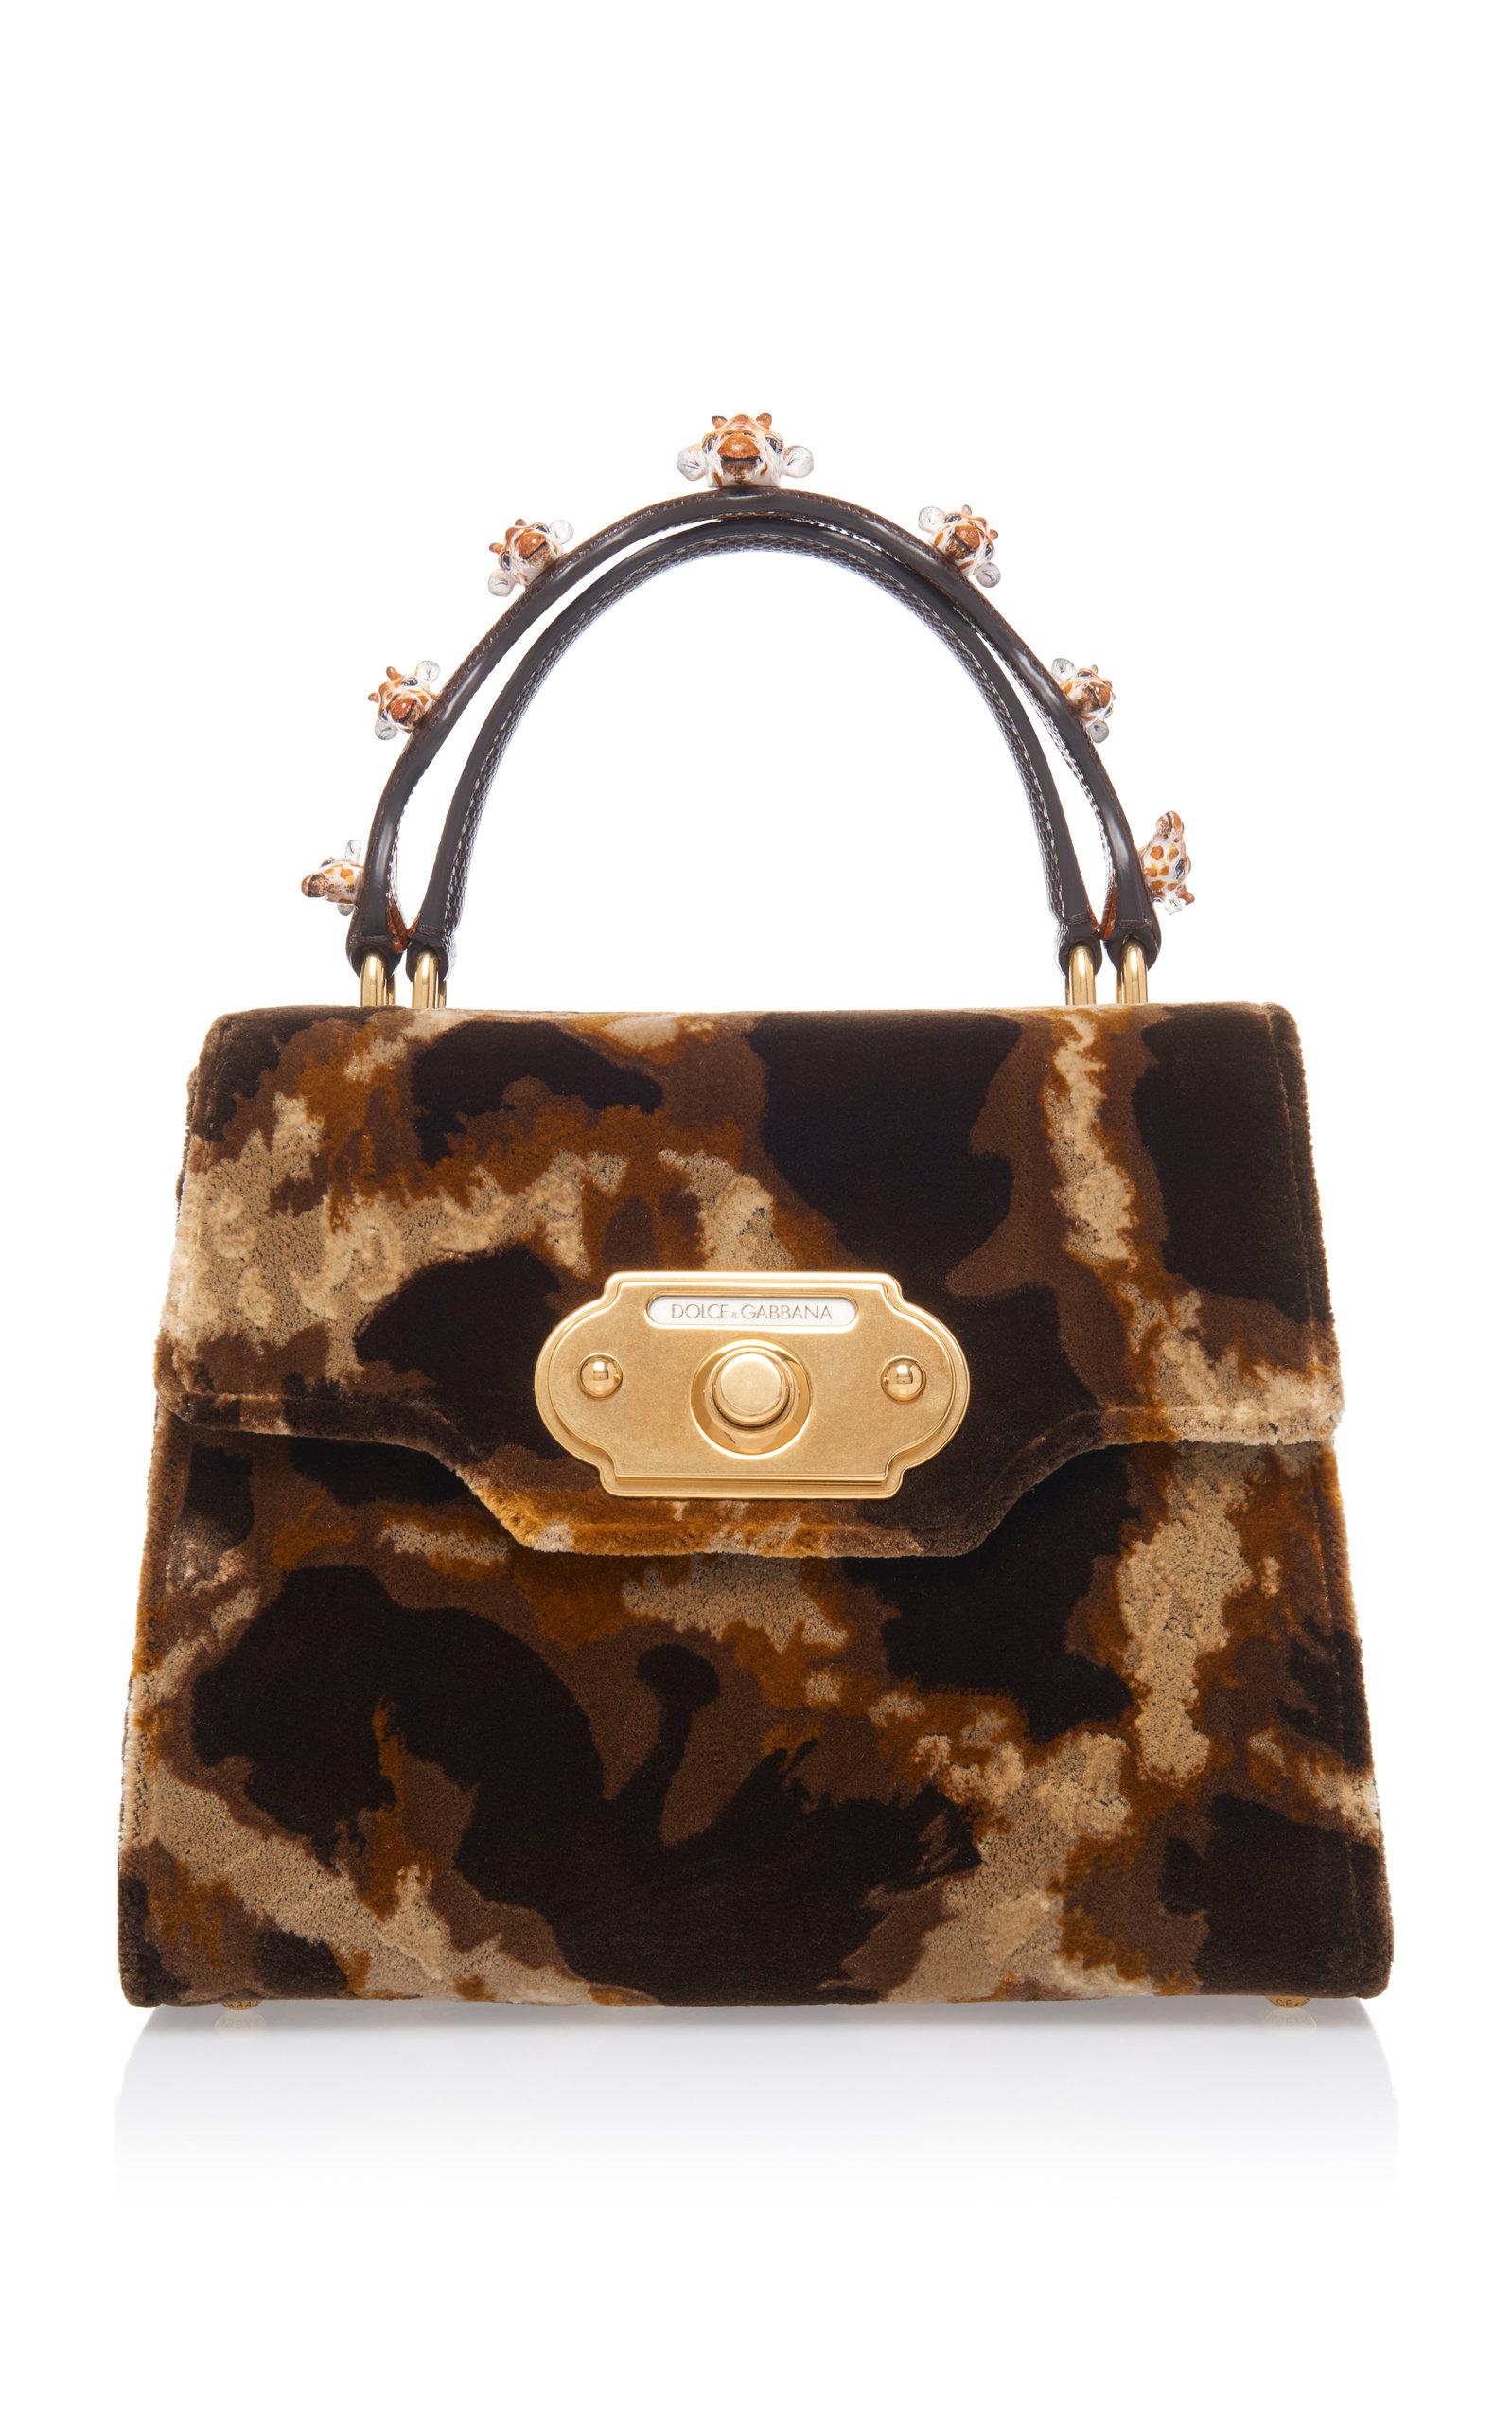 Dolce & Gabbana Embellished Leather-Trimmed Suede Tote